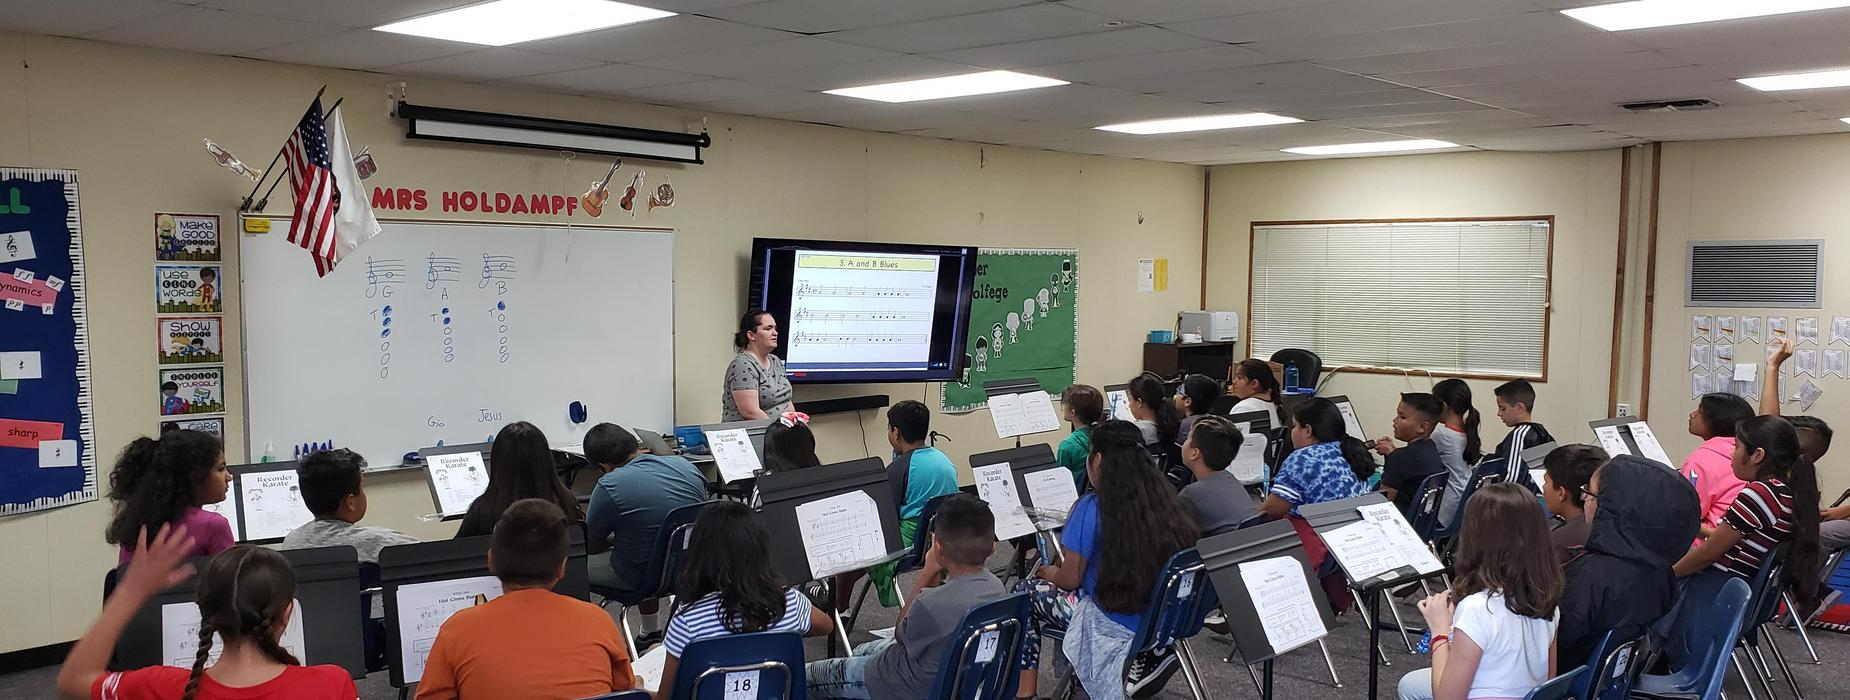 students learning music from their teacher